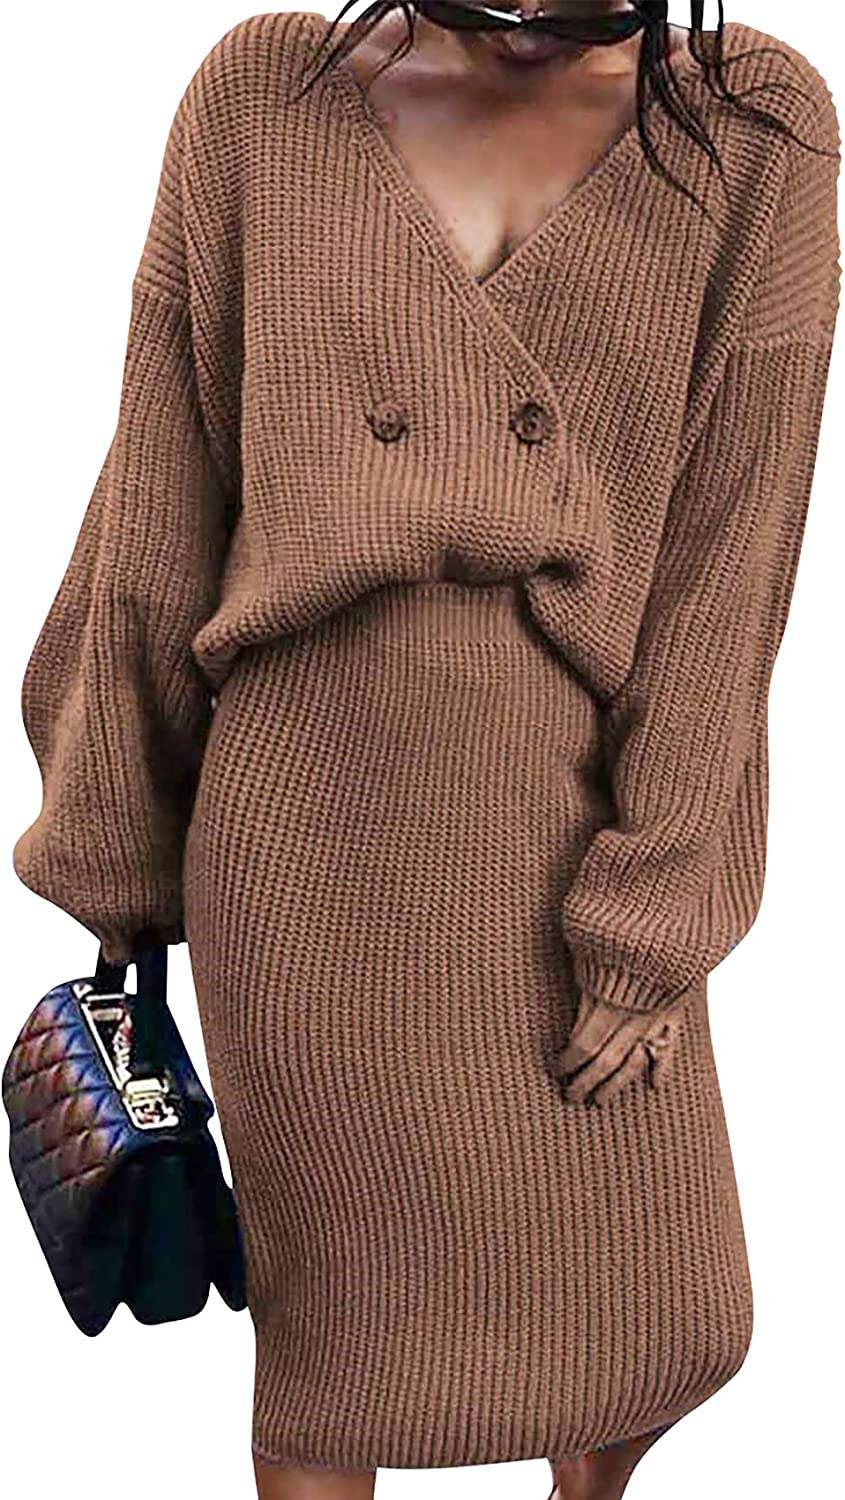 Womens 2 Piece Outfits Sexy Sweater Set Deep V Neck Cable Knit Tops + Bodycon Skirt Dress Fall Winter Set